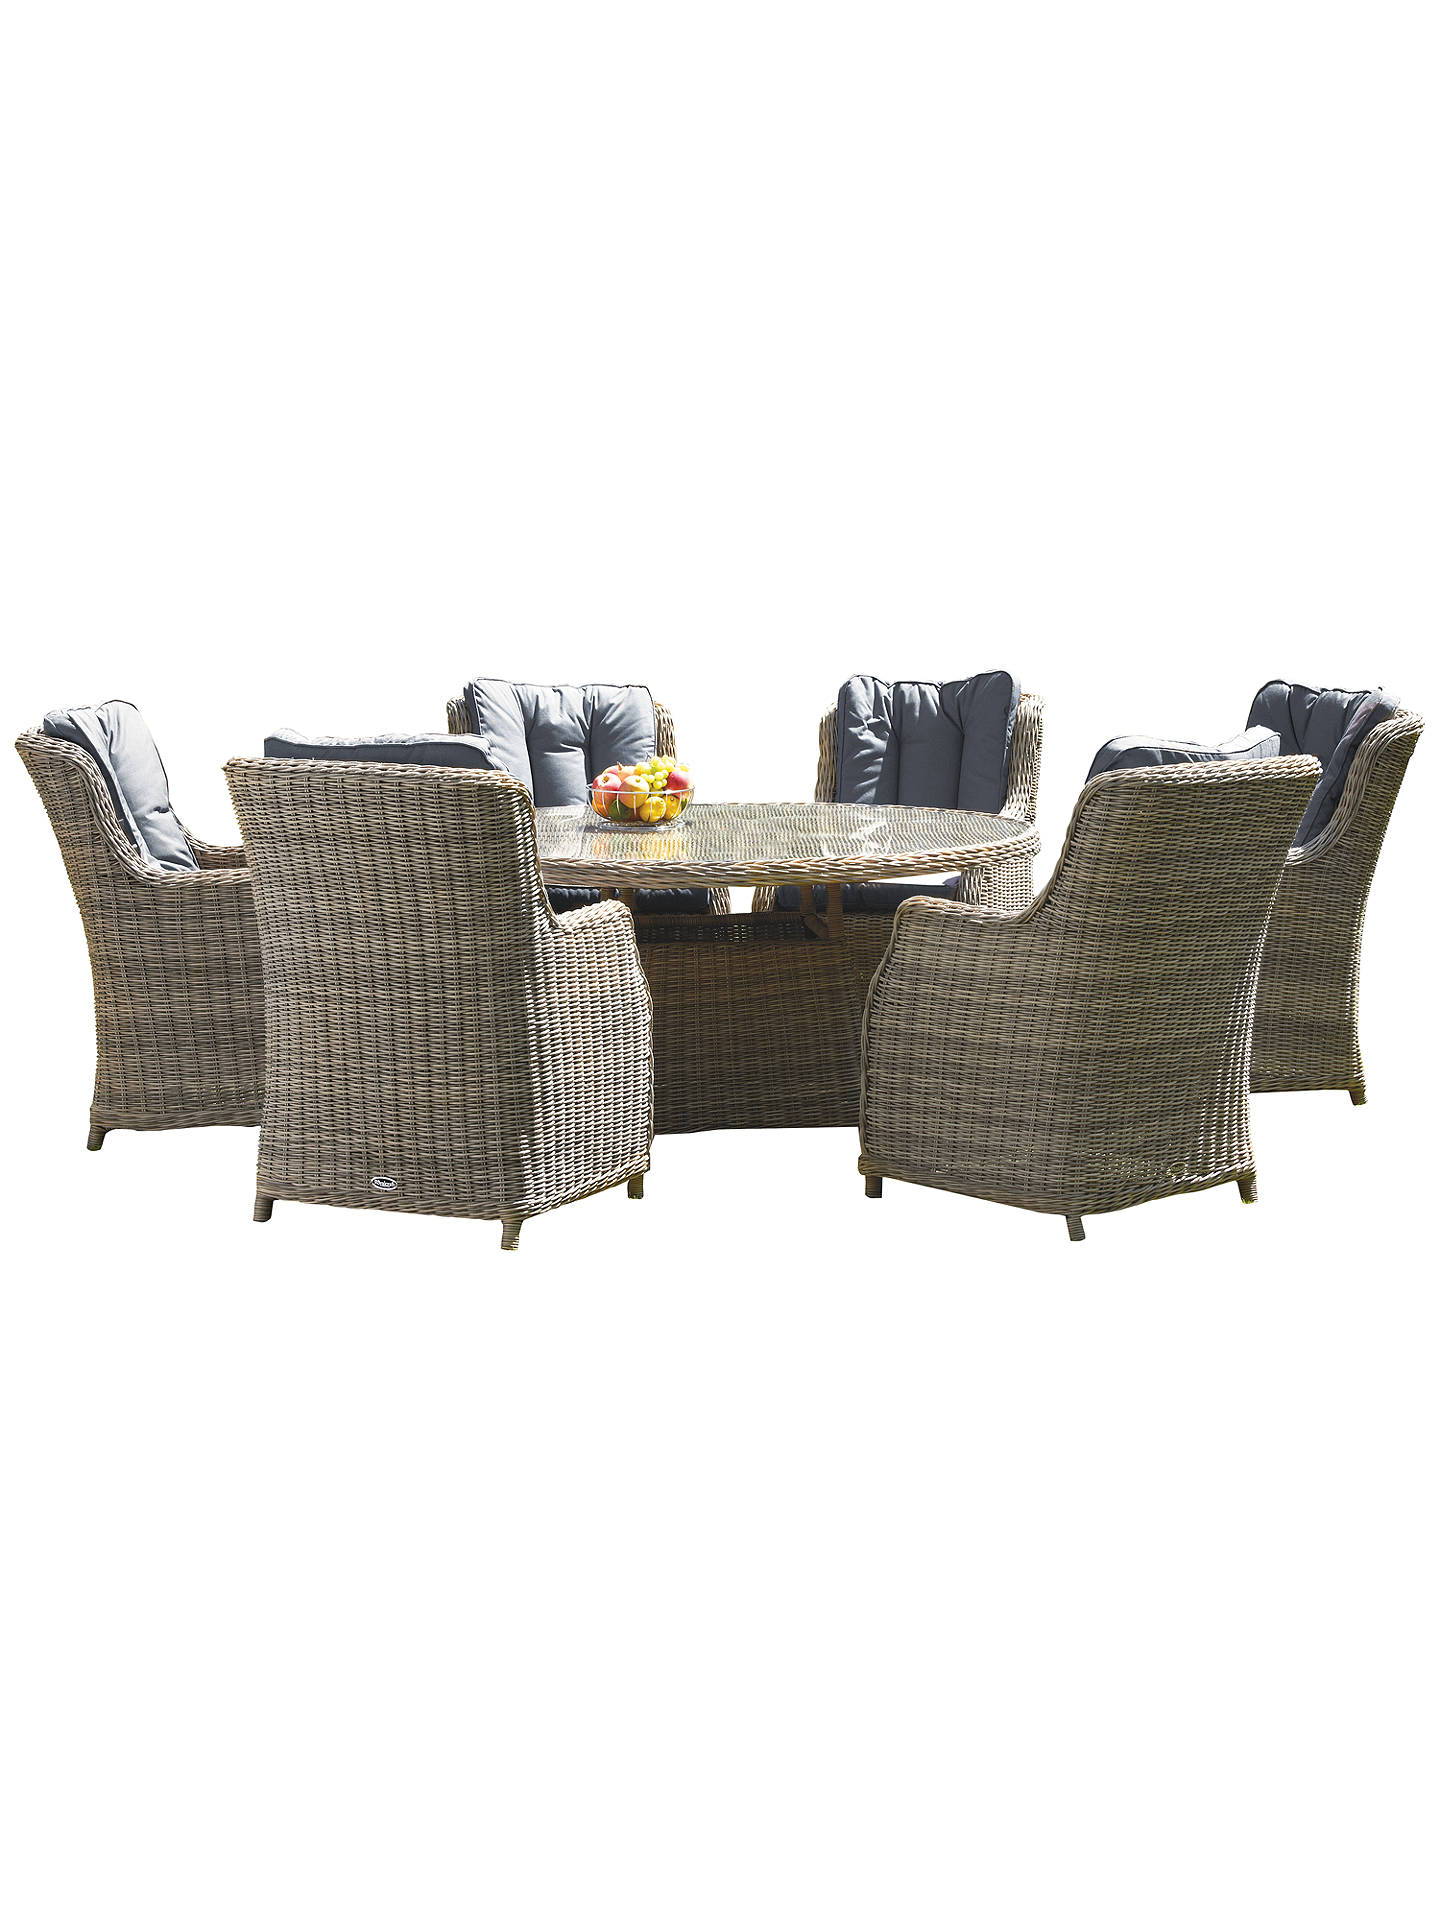 Buy Royalcraft Wentworth 6 Seater Garden Oval Dining Table and High Back Chairs Set Online at johnlewis.com